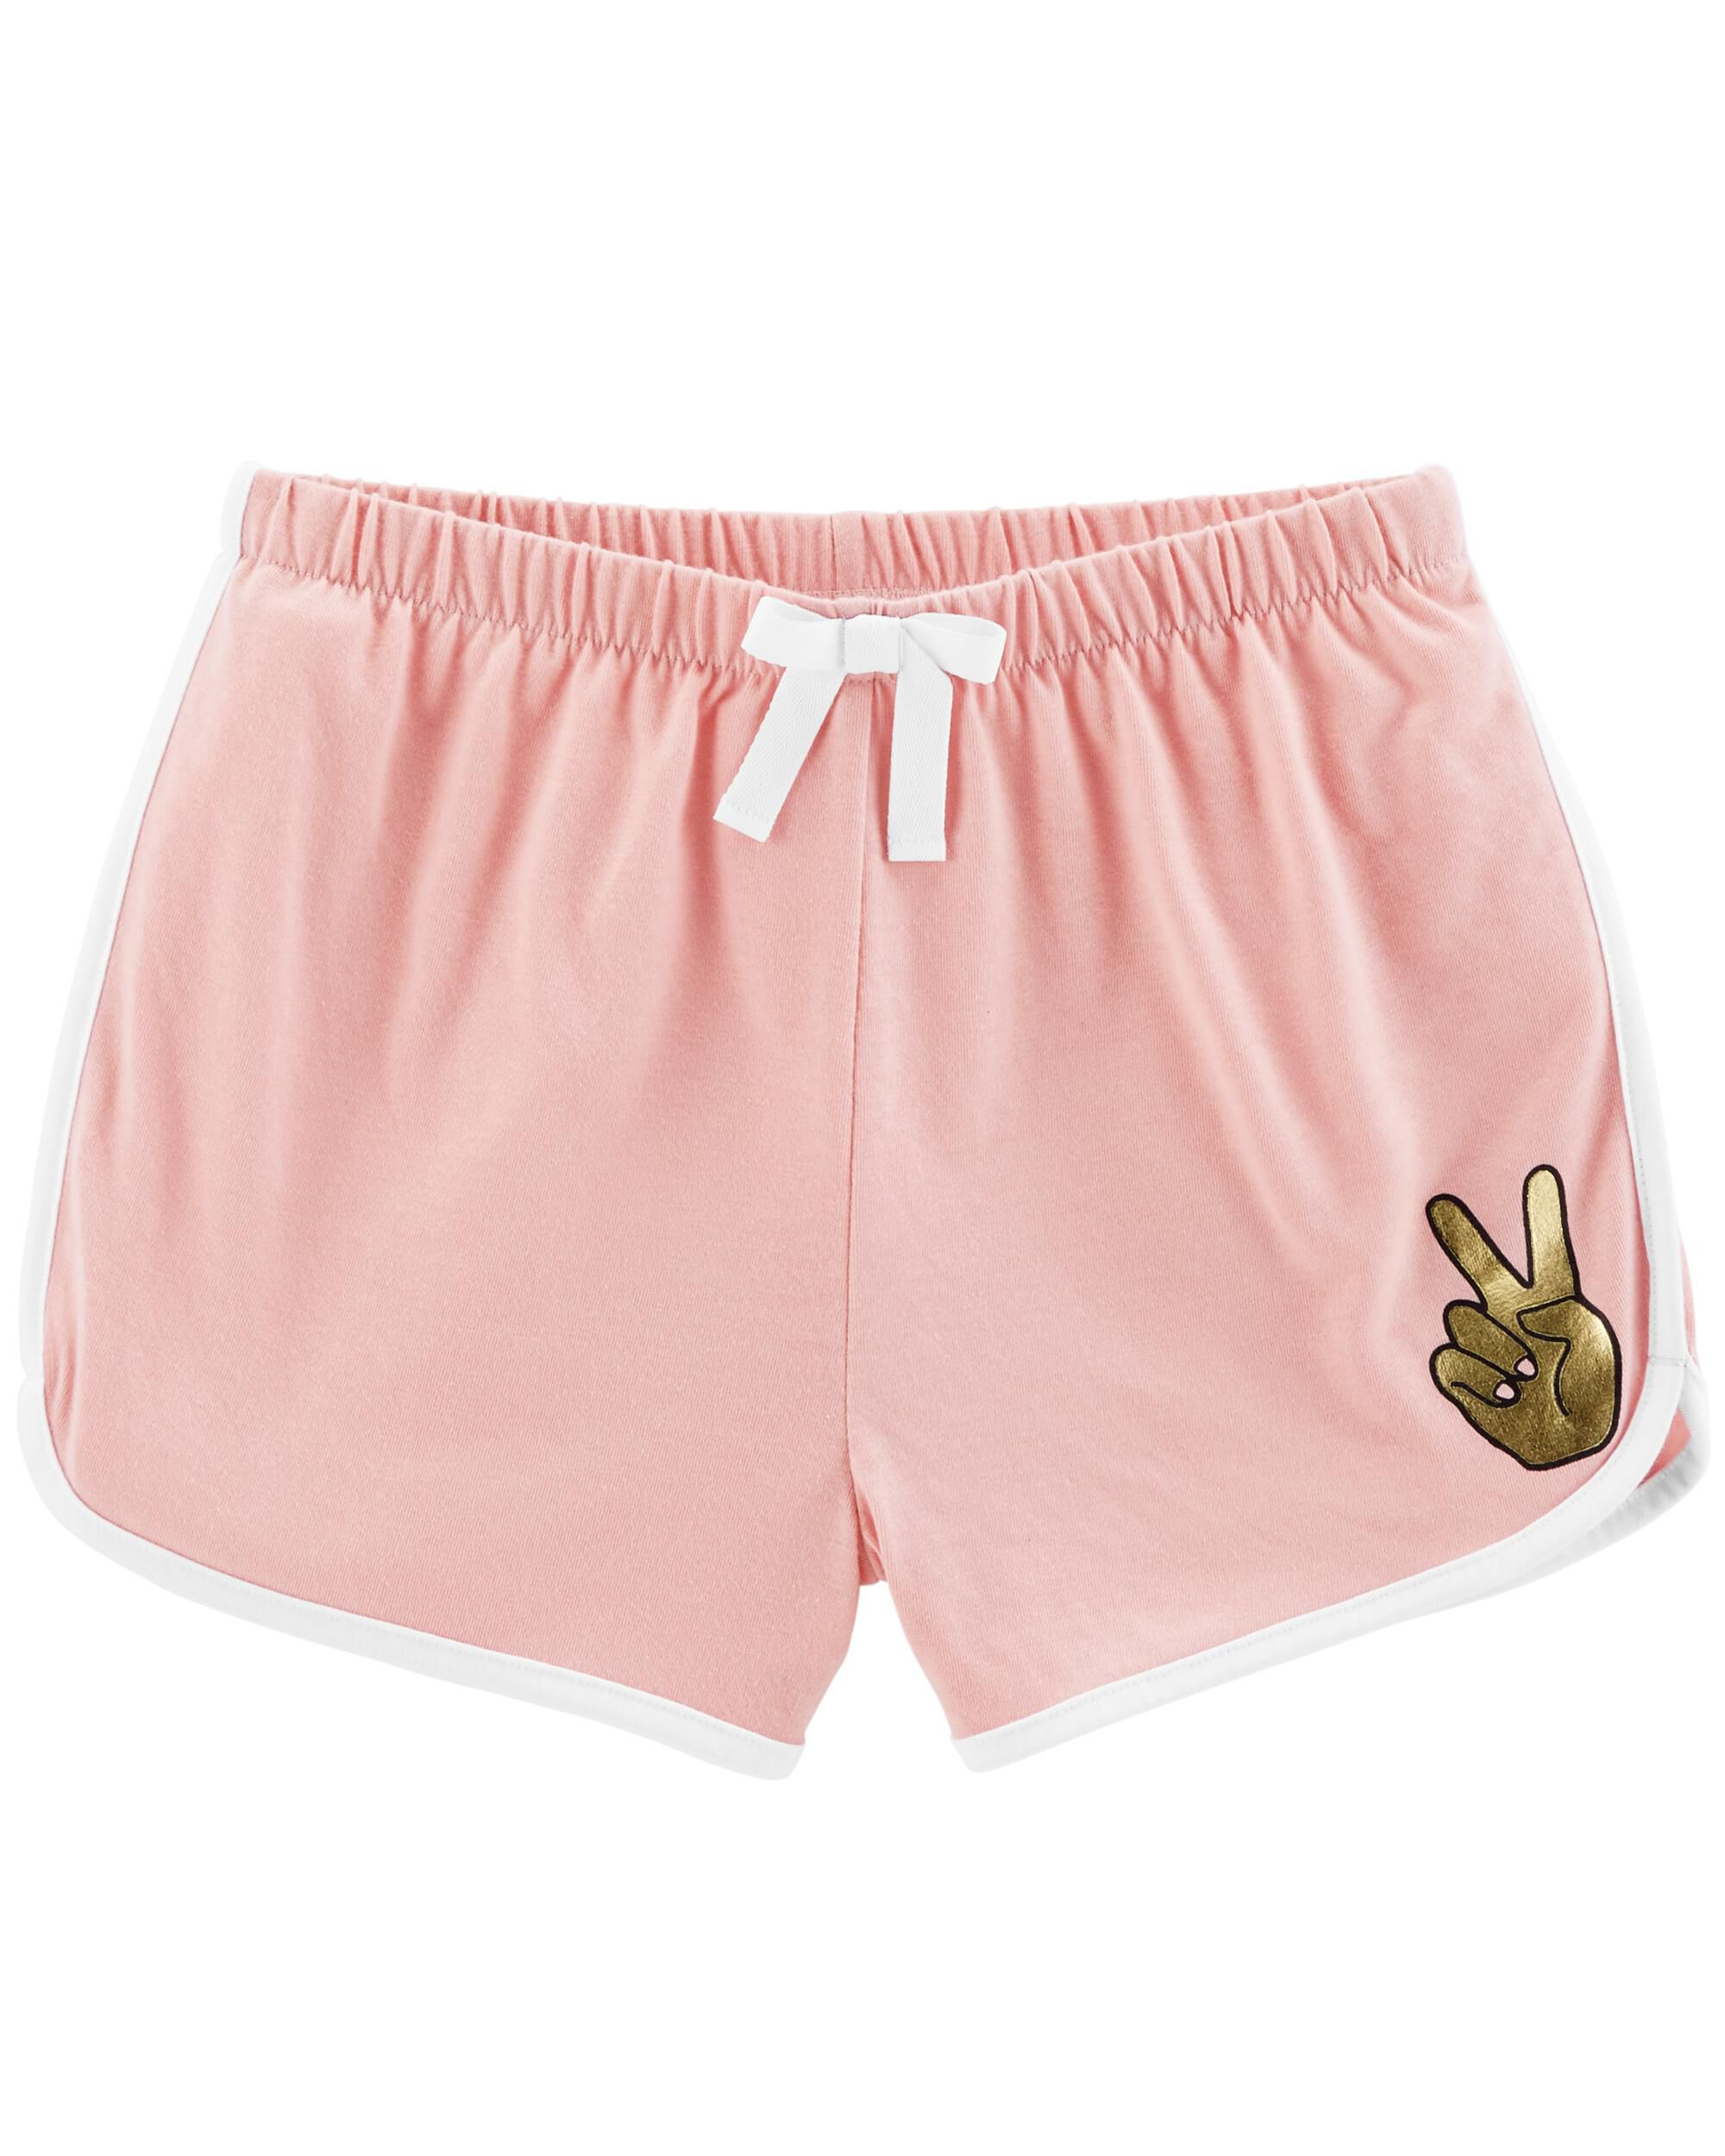 *Clearance*  Peace Sign French Terry Sleep Short...